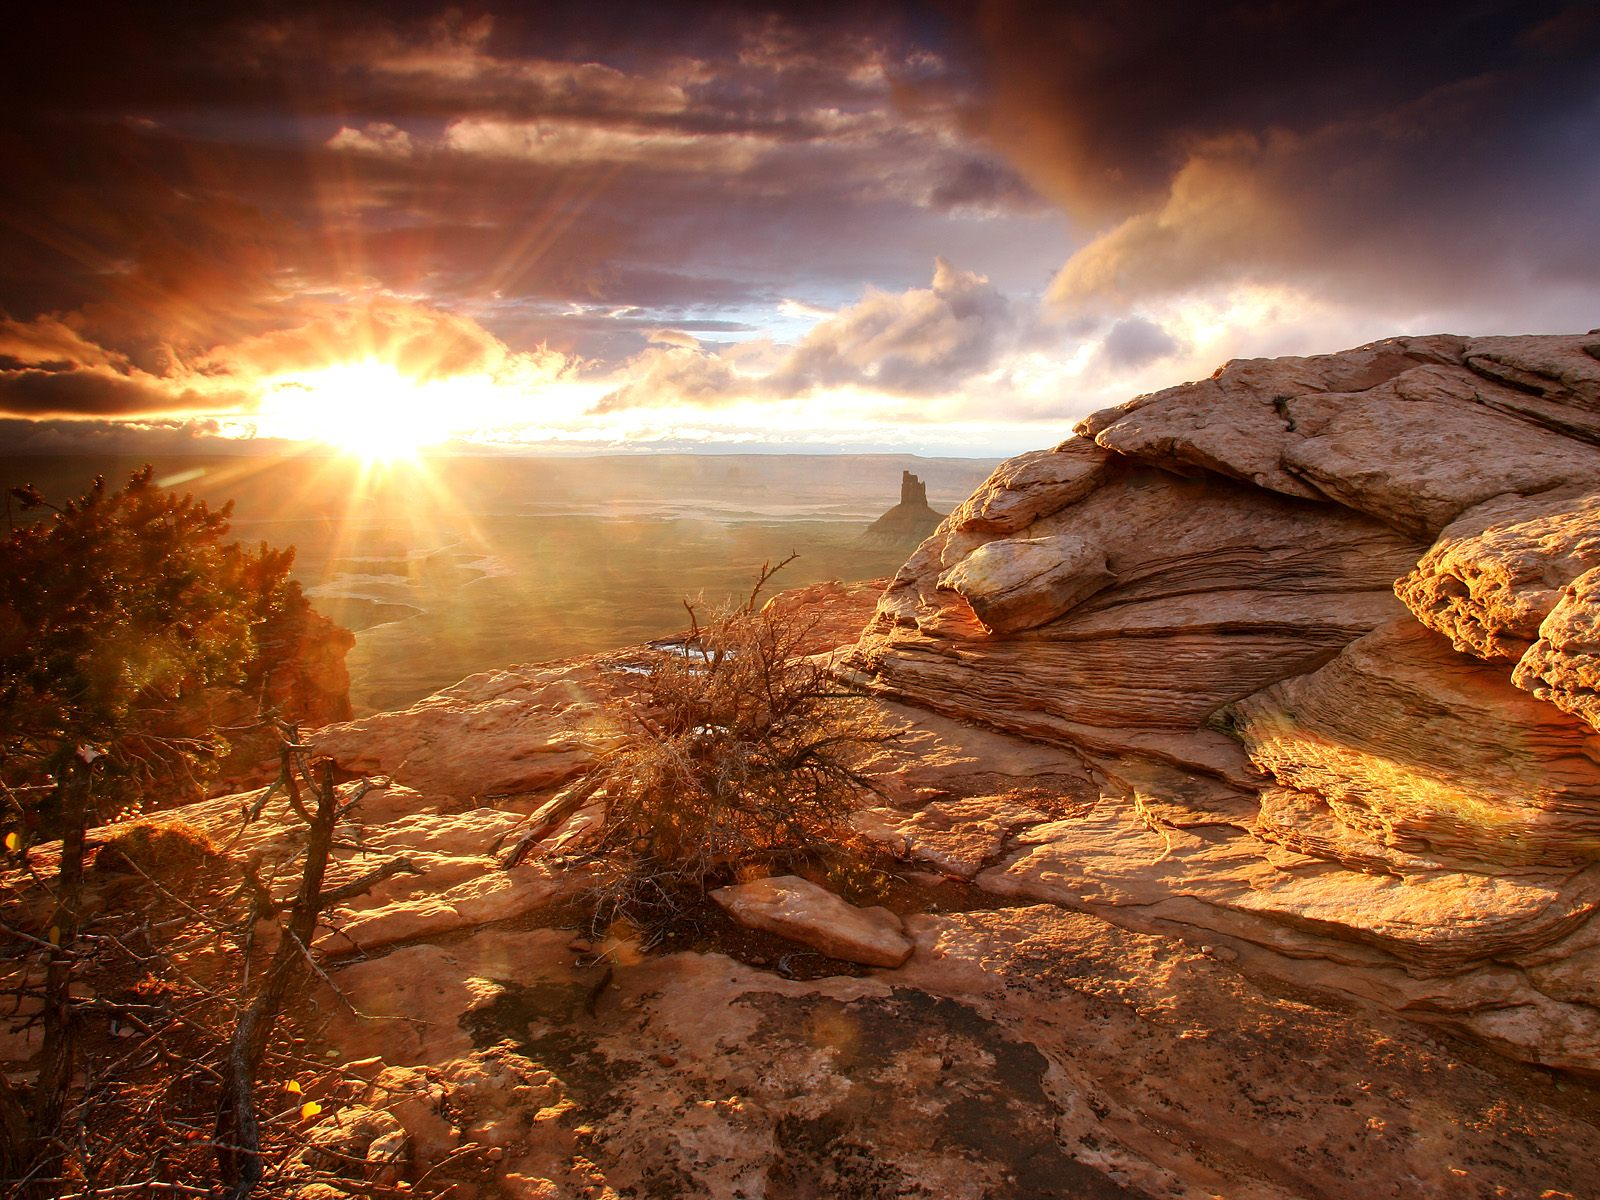 Canyonlands National Park Wallpapers HD Wallpapers 1600x1200